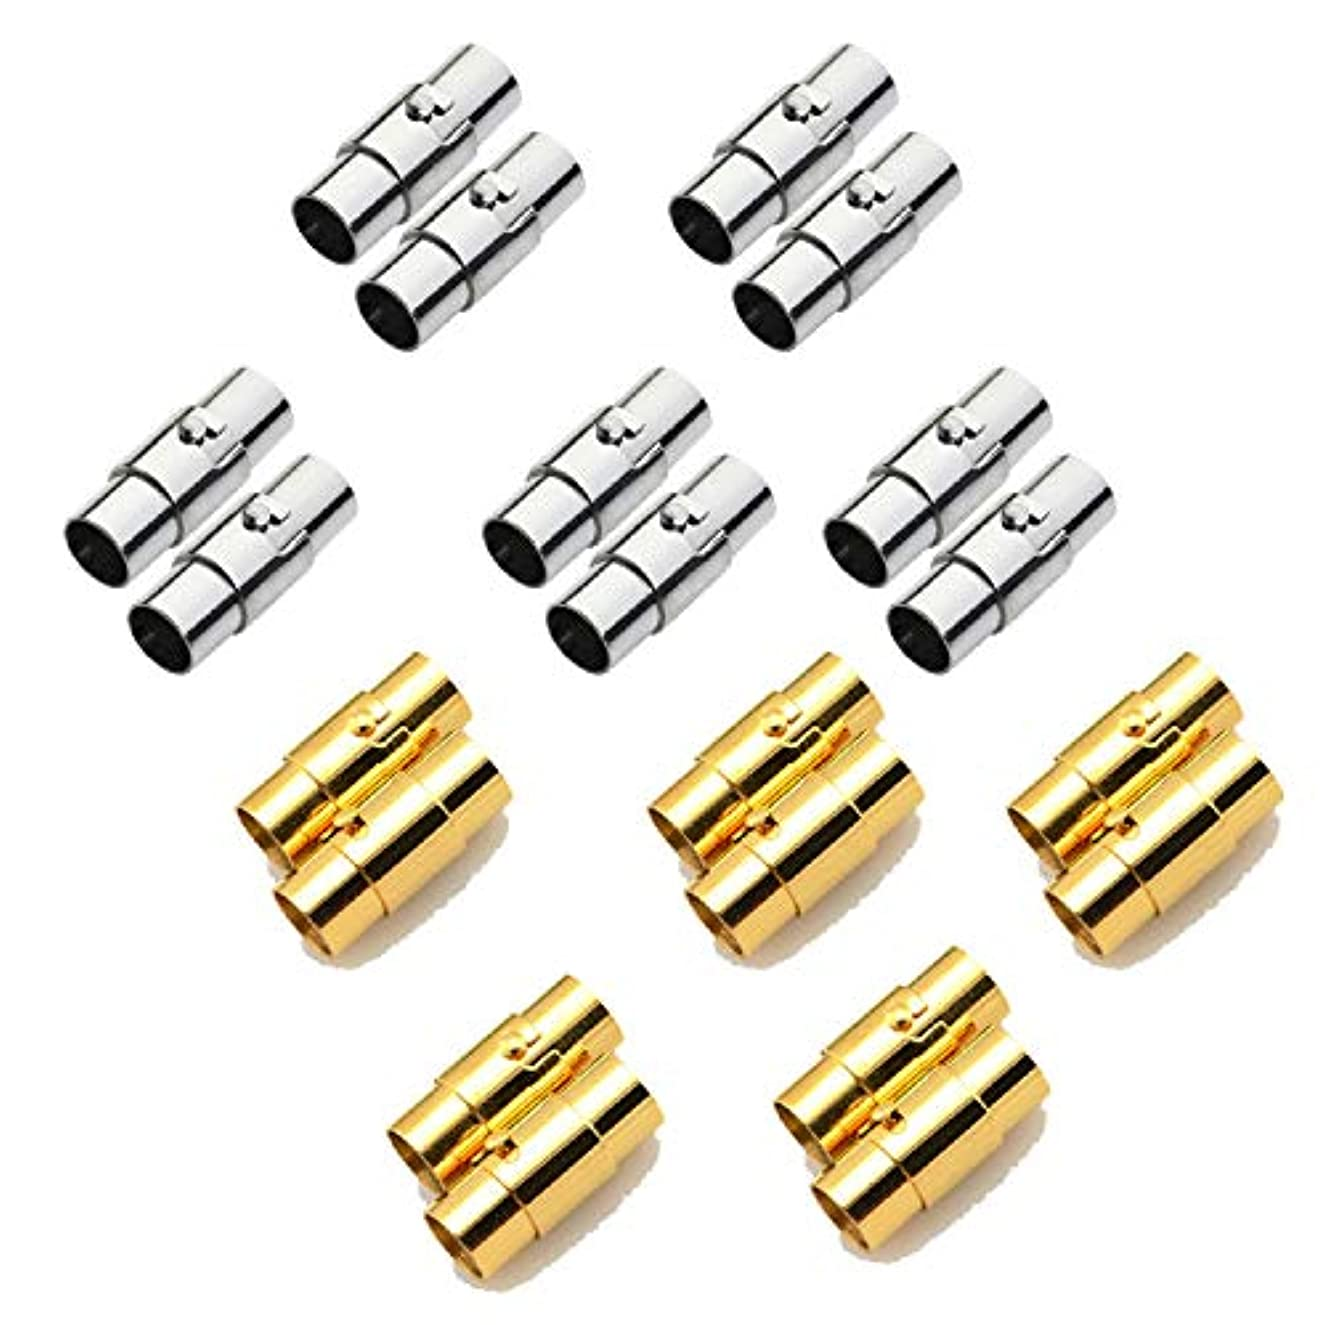 REVEW 20PCS Cord End Caps for Jewelry Making, Magnetic Clasps for Leather with Locking Leather Rope Necklace/Bracelet Buckle(Silver Gold 8)